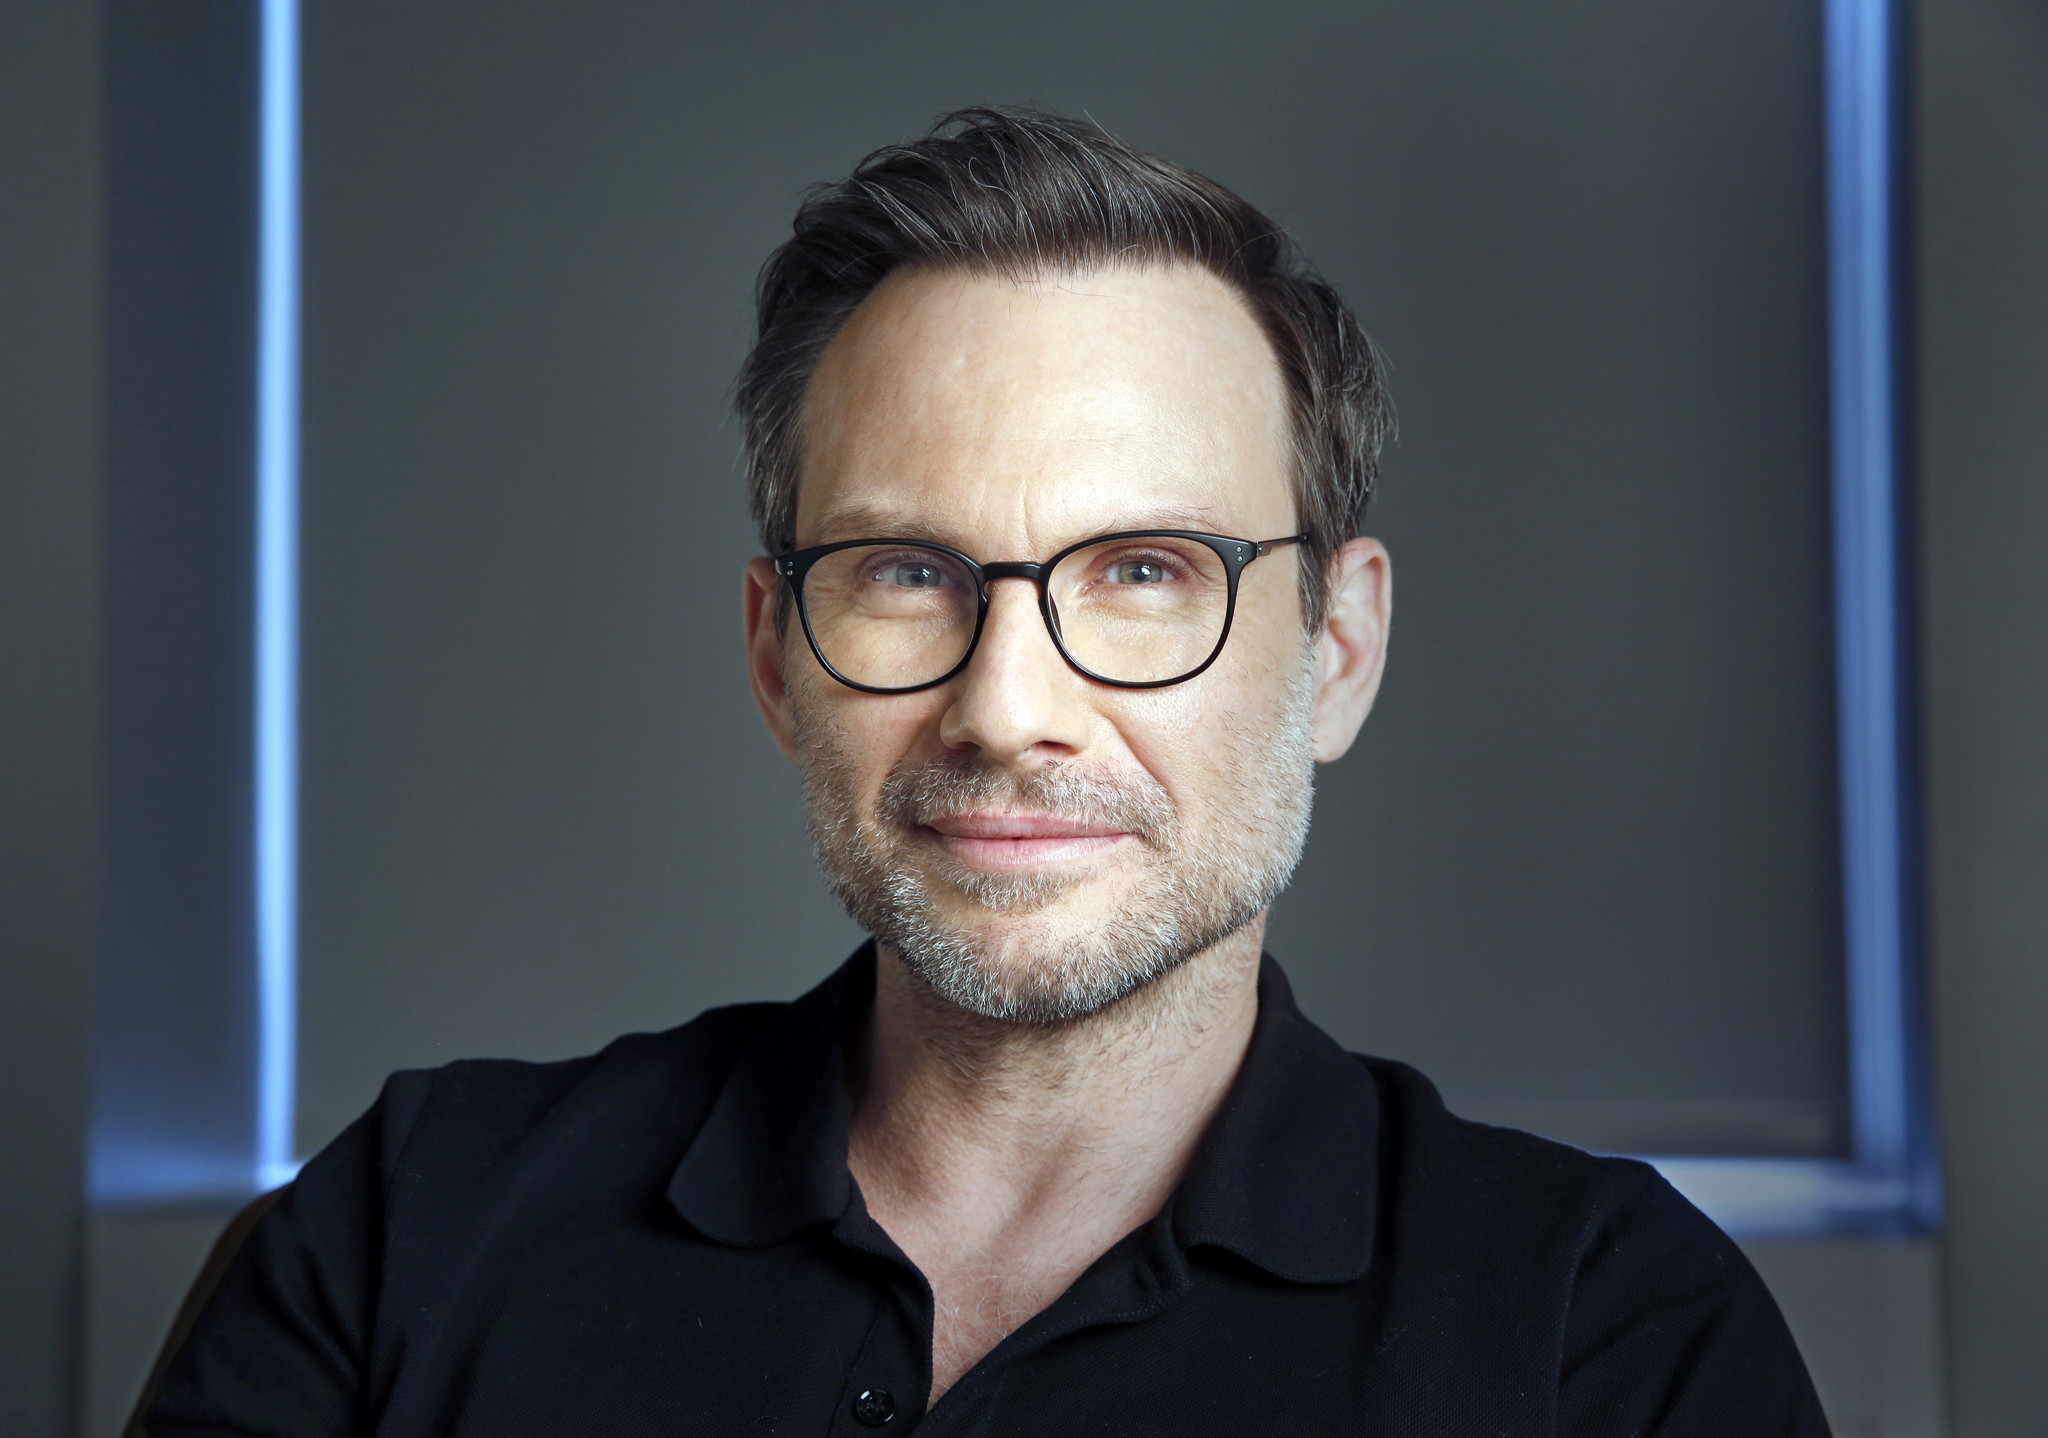 Mr Robots Christian Slater Hints At Lots Of Chaotic Energy In